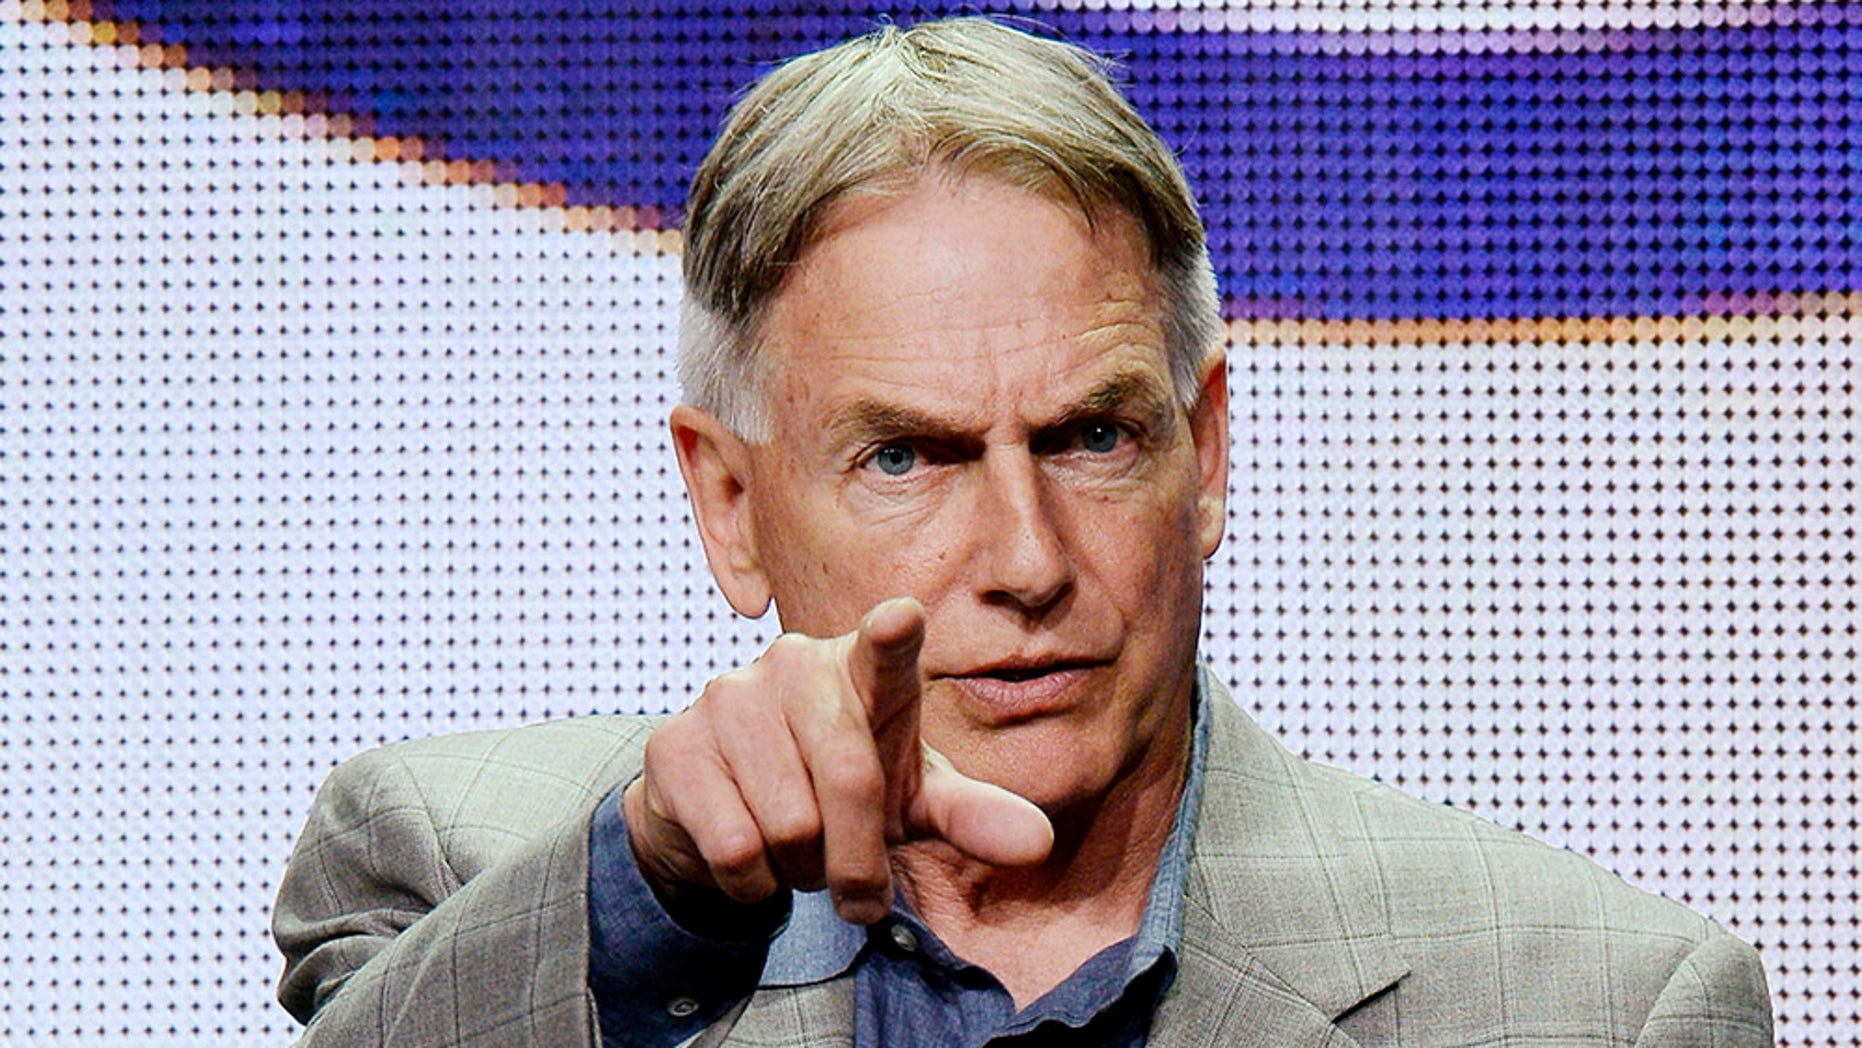 """""""NCIS"""" star Mark Harmon told Closer Weekly that when it comes to being a star, family comes first."""